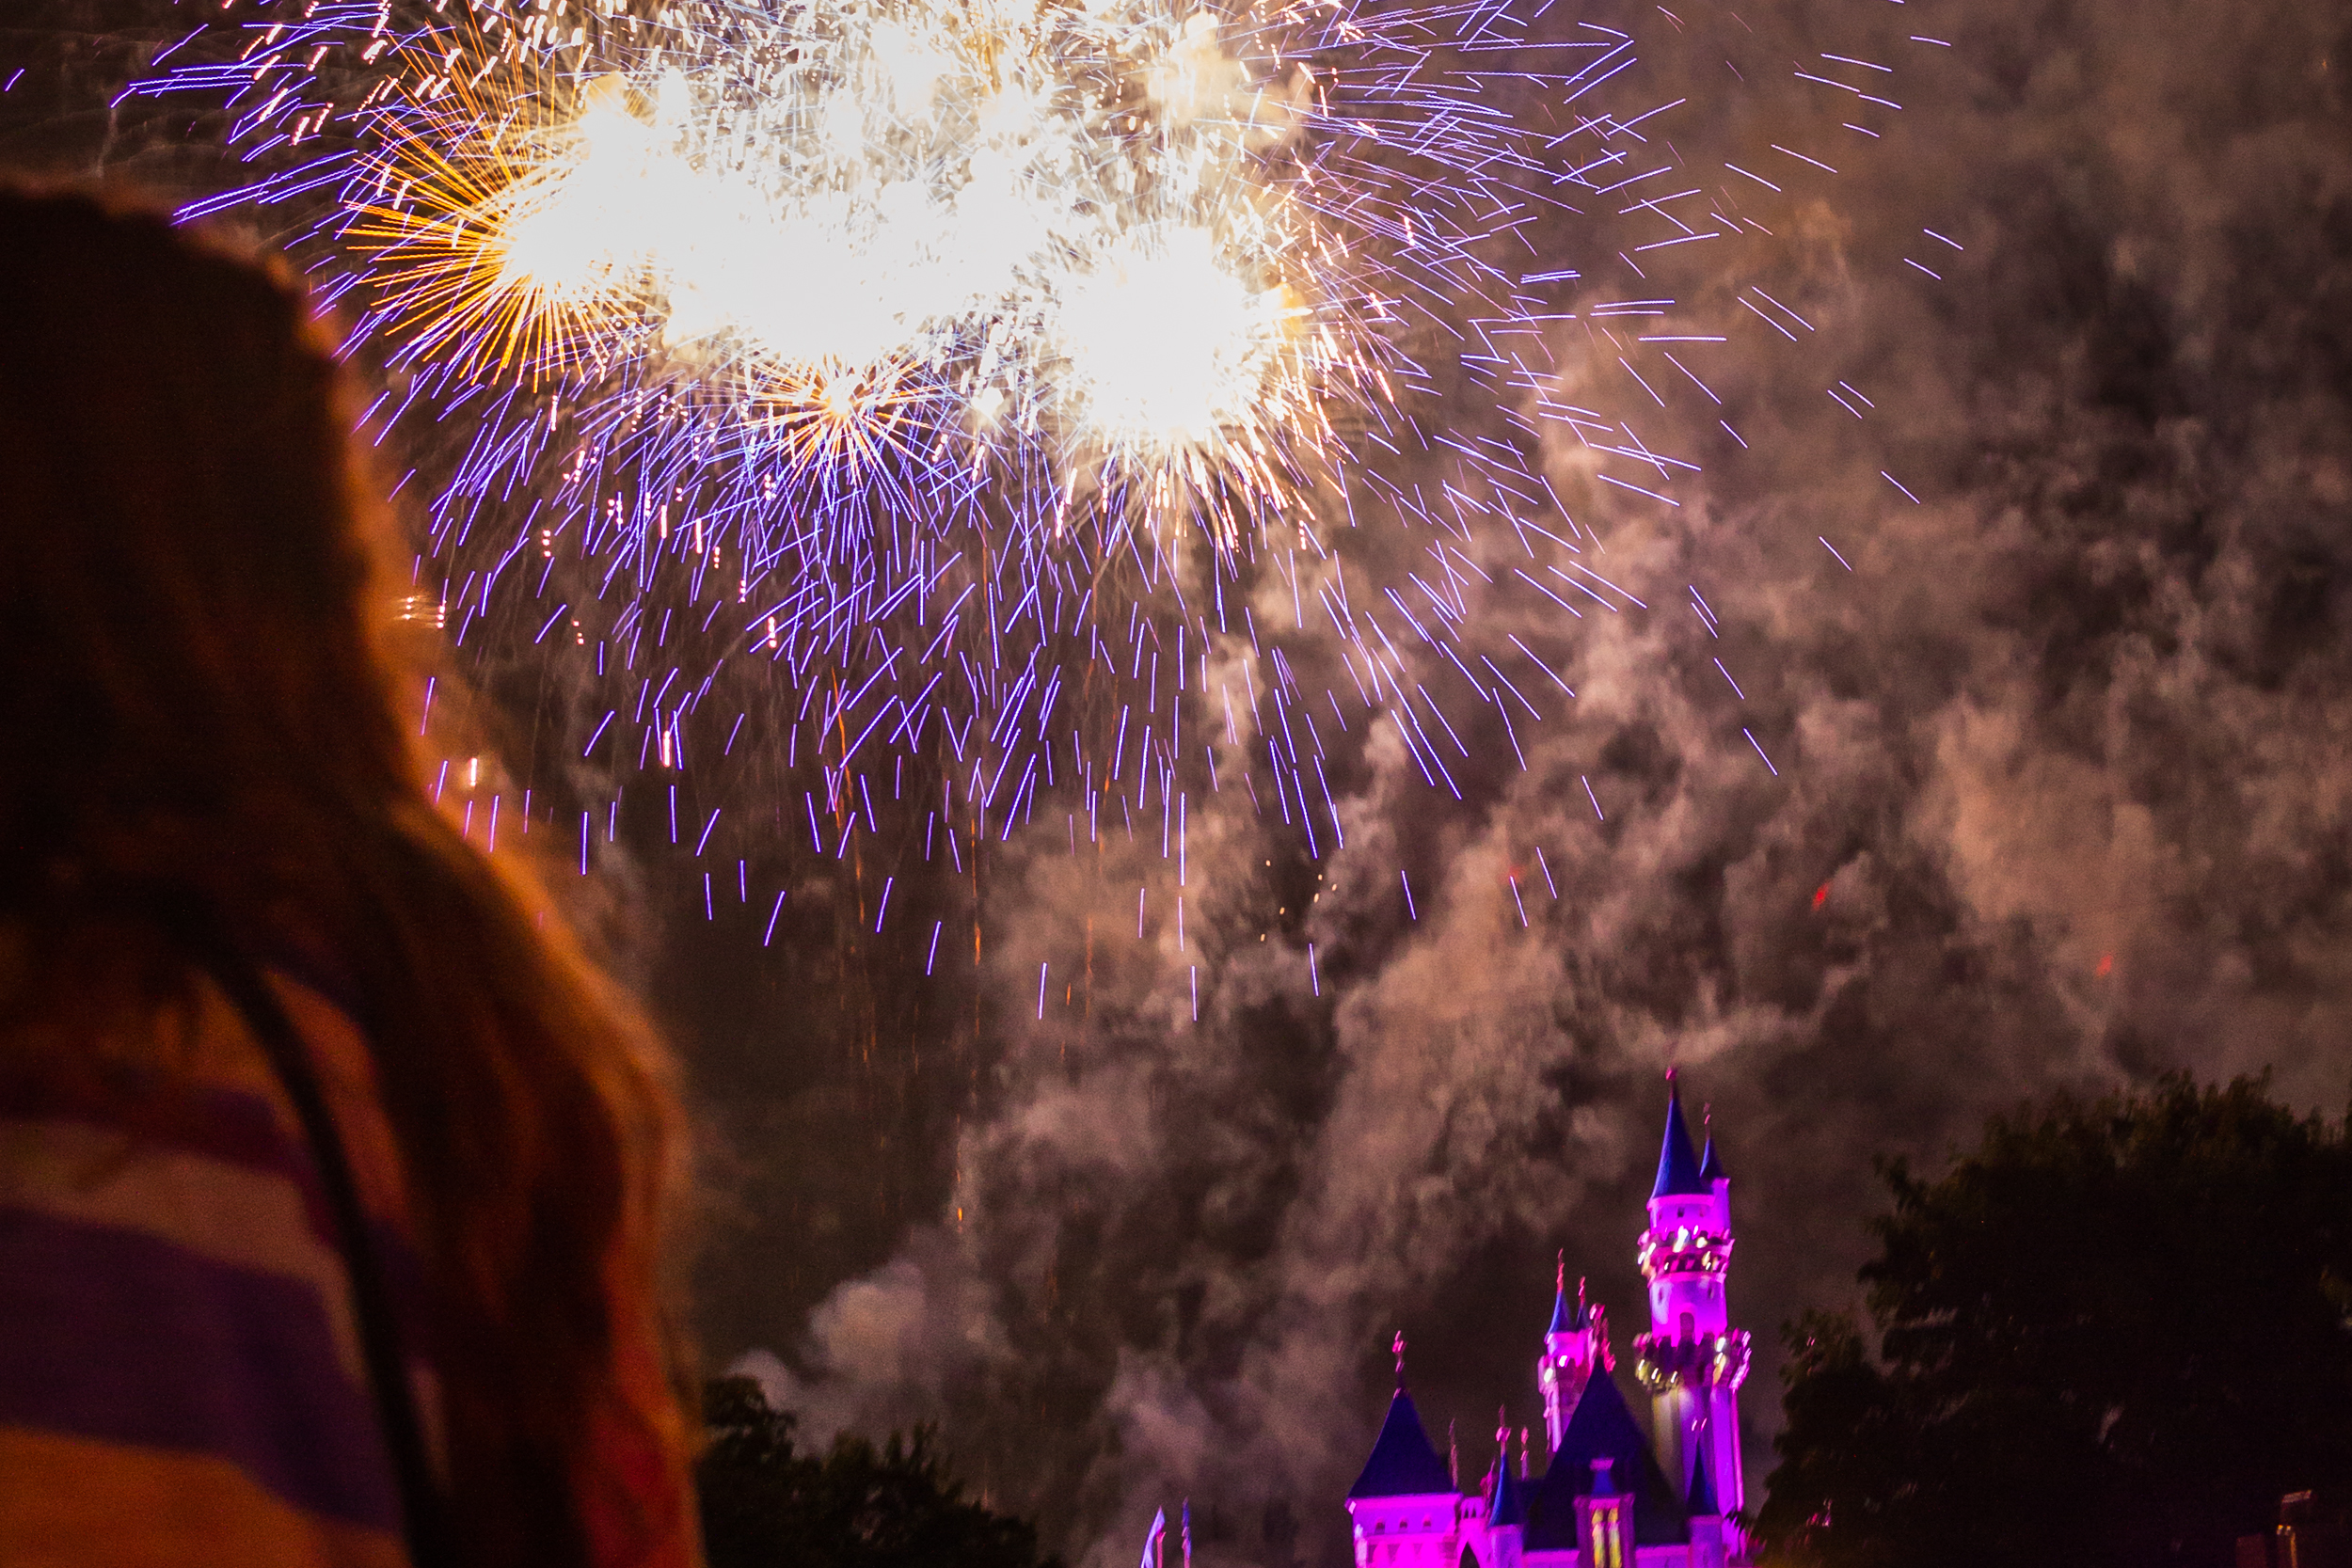 The nightly fireworks show at Disneyland Park.